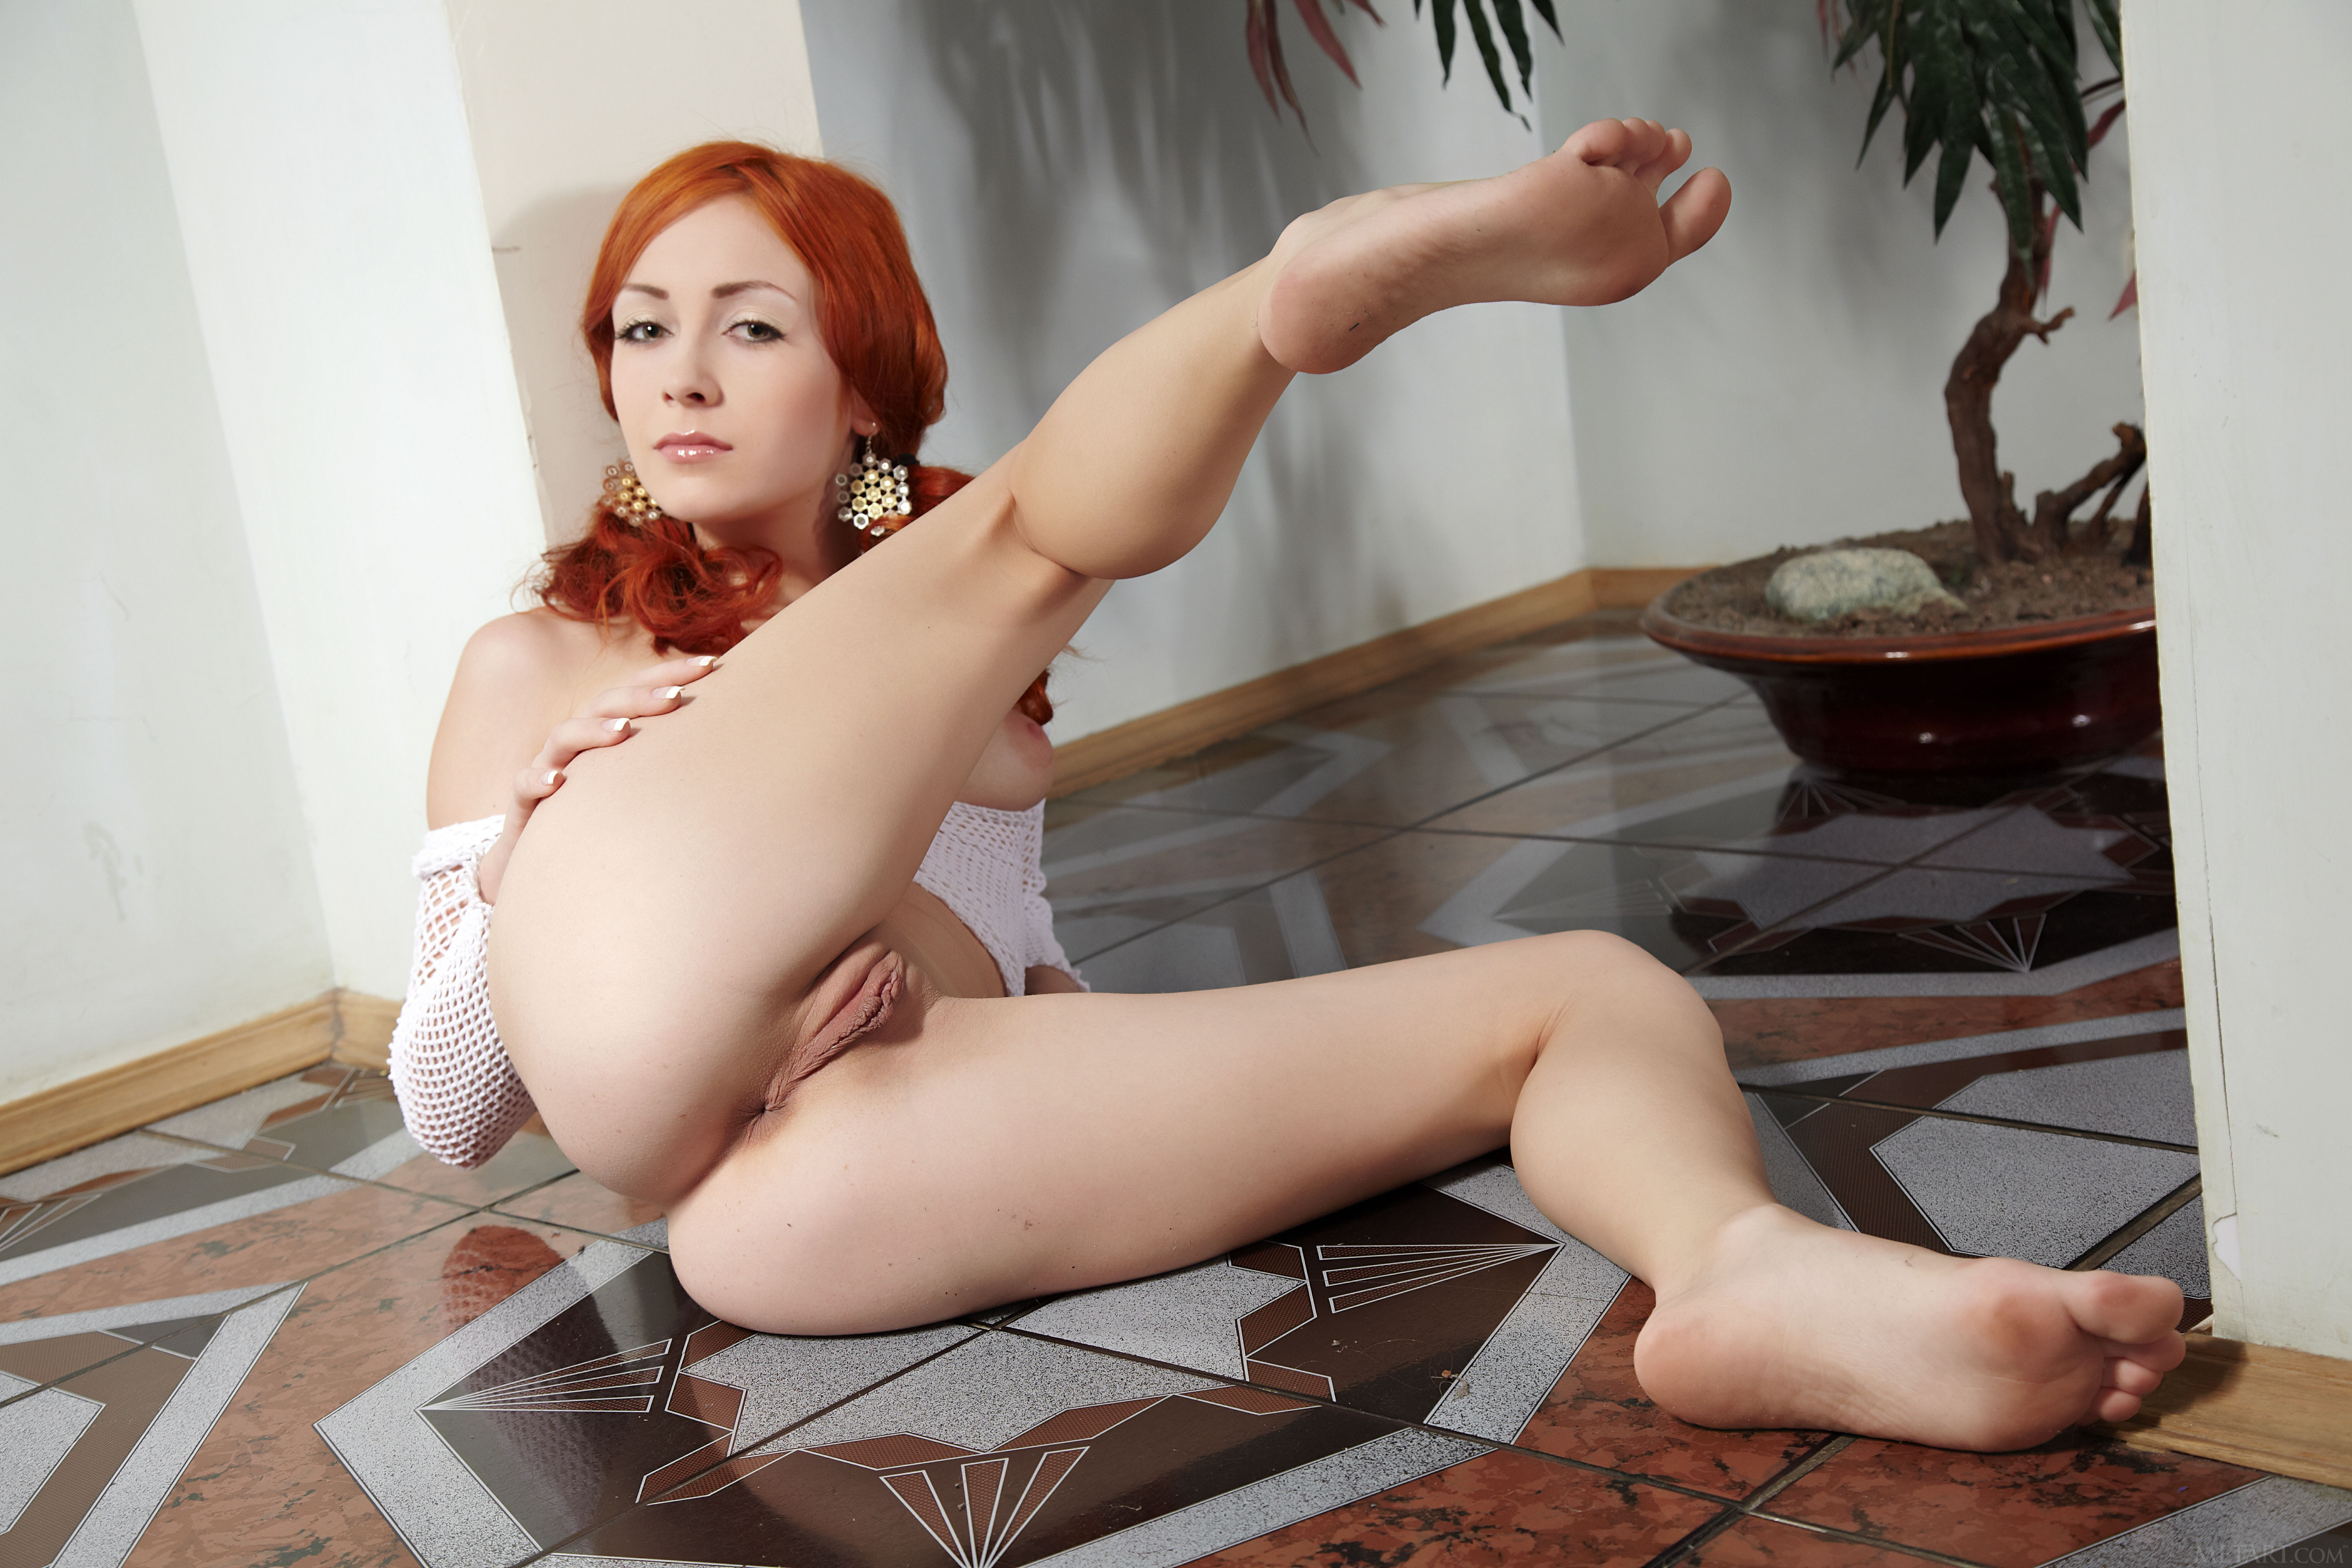 Red haired girl hot pussy porn